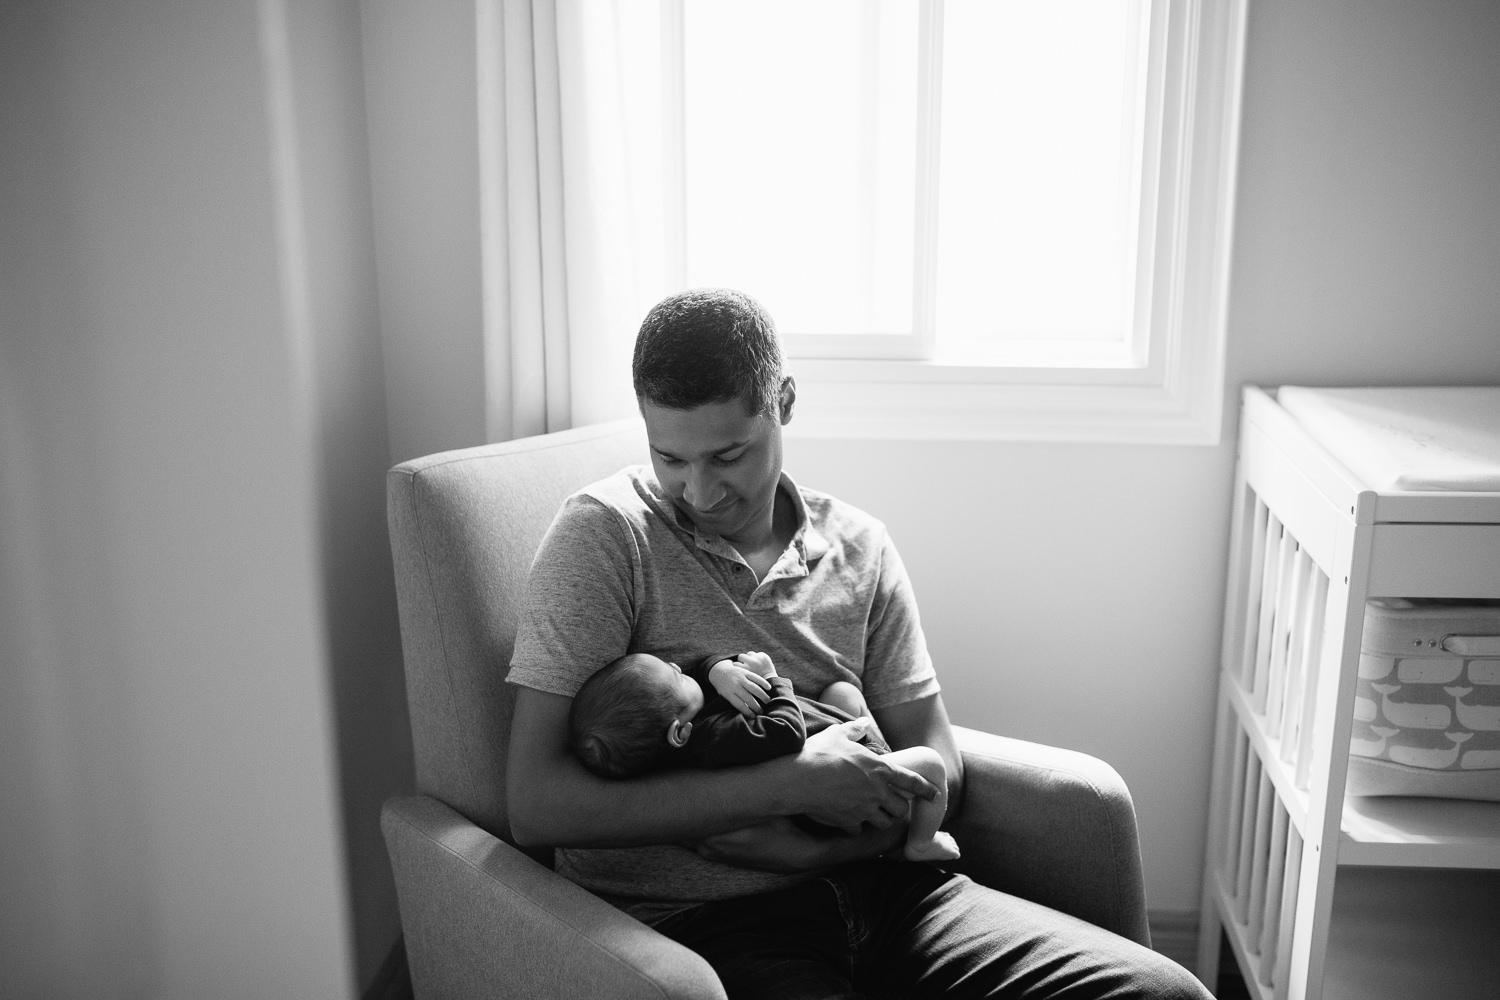 father sitting in nursery rocker holding 2 week old baby boy in navy blue onesie who is sleeping with arms crossed - York Region Lifestyle Photography